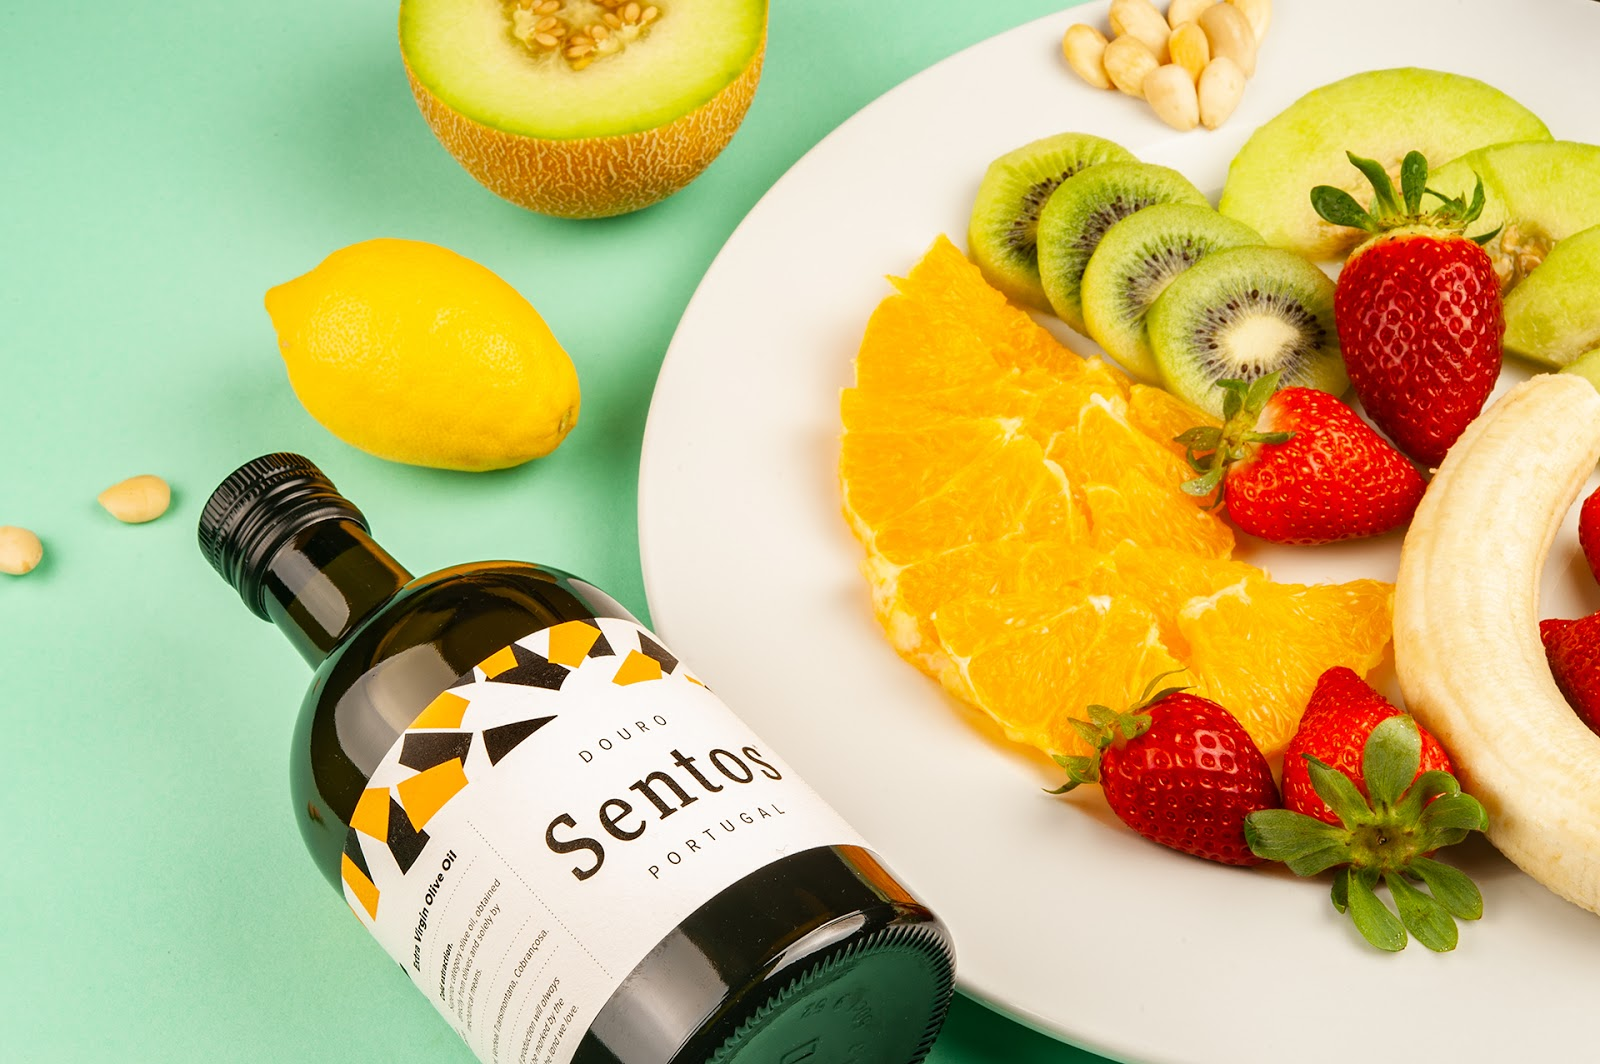 Sentos Evoo On Packaging Of The World